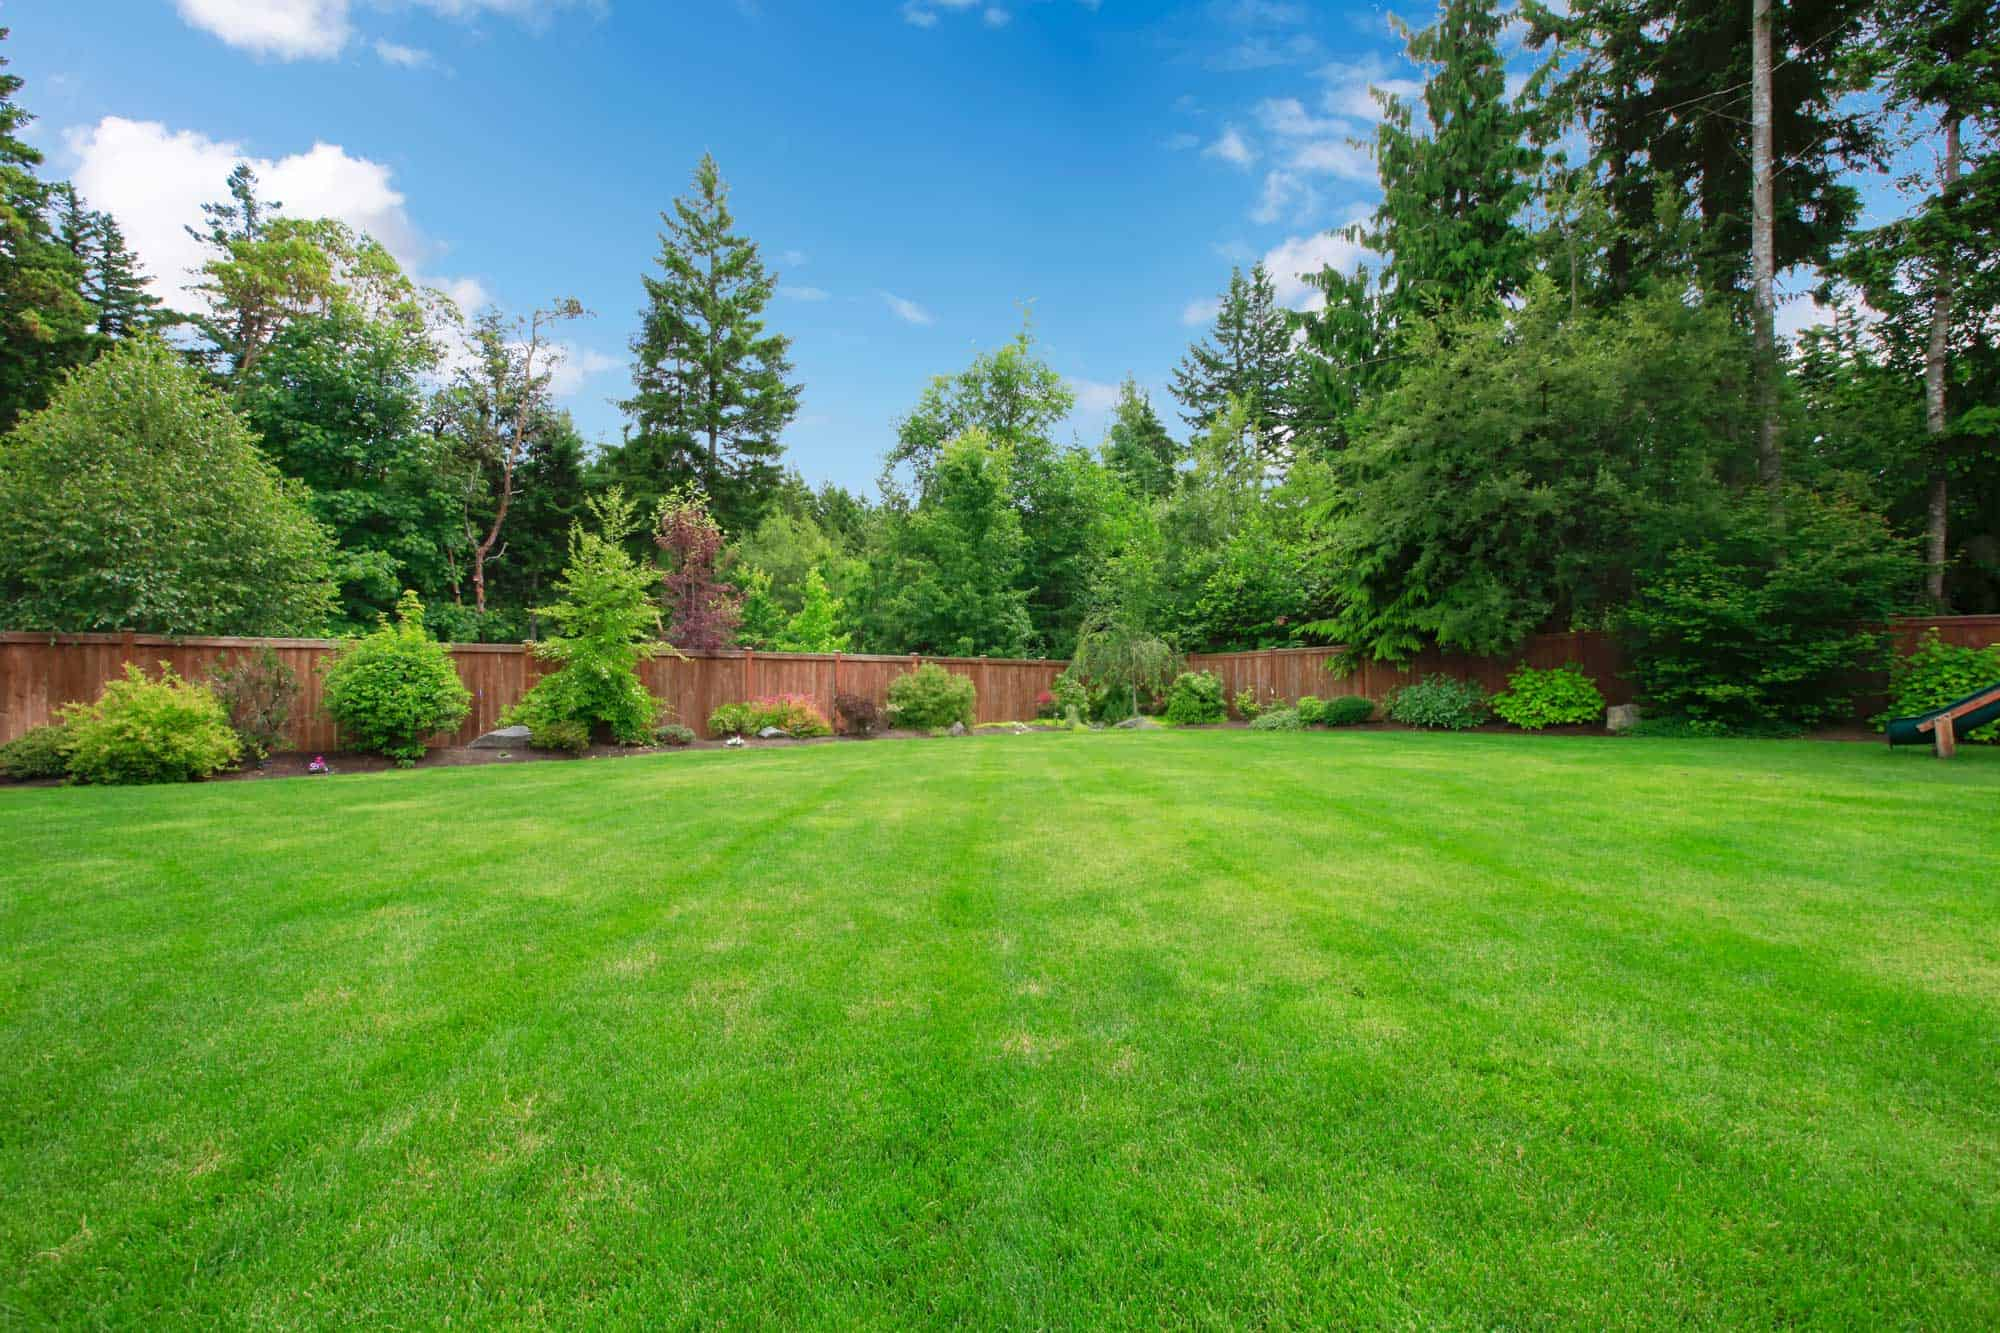 landscaped backyard with freshly cut grass